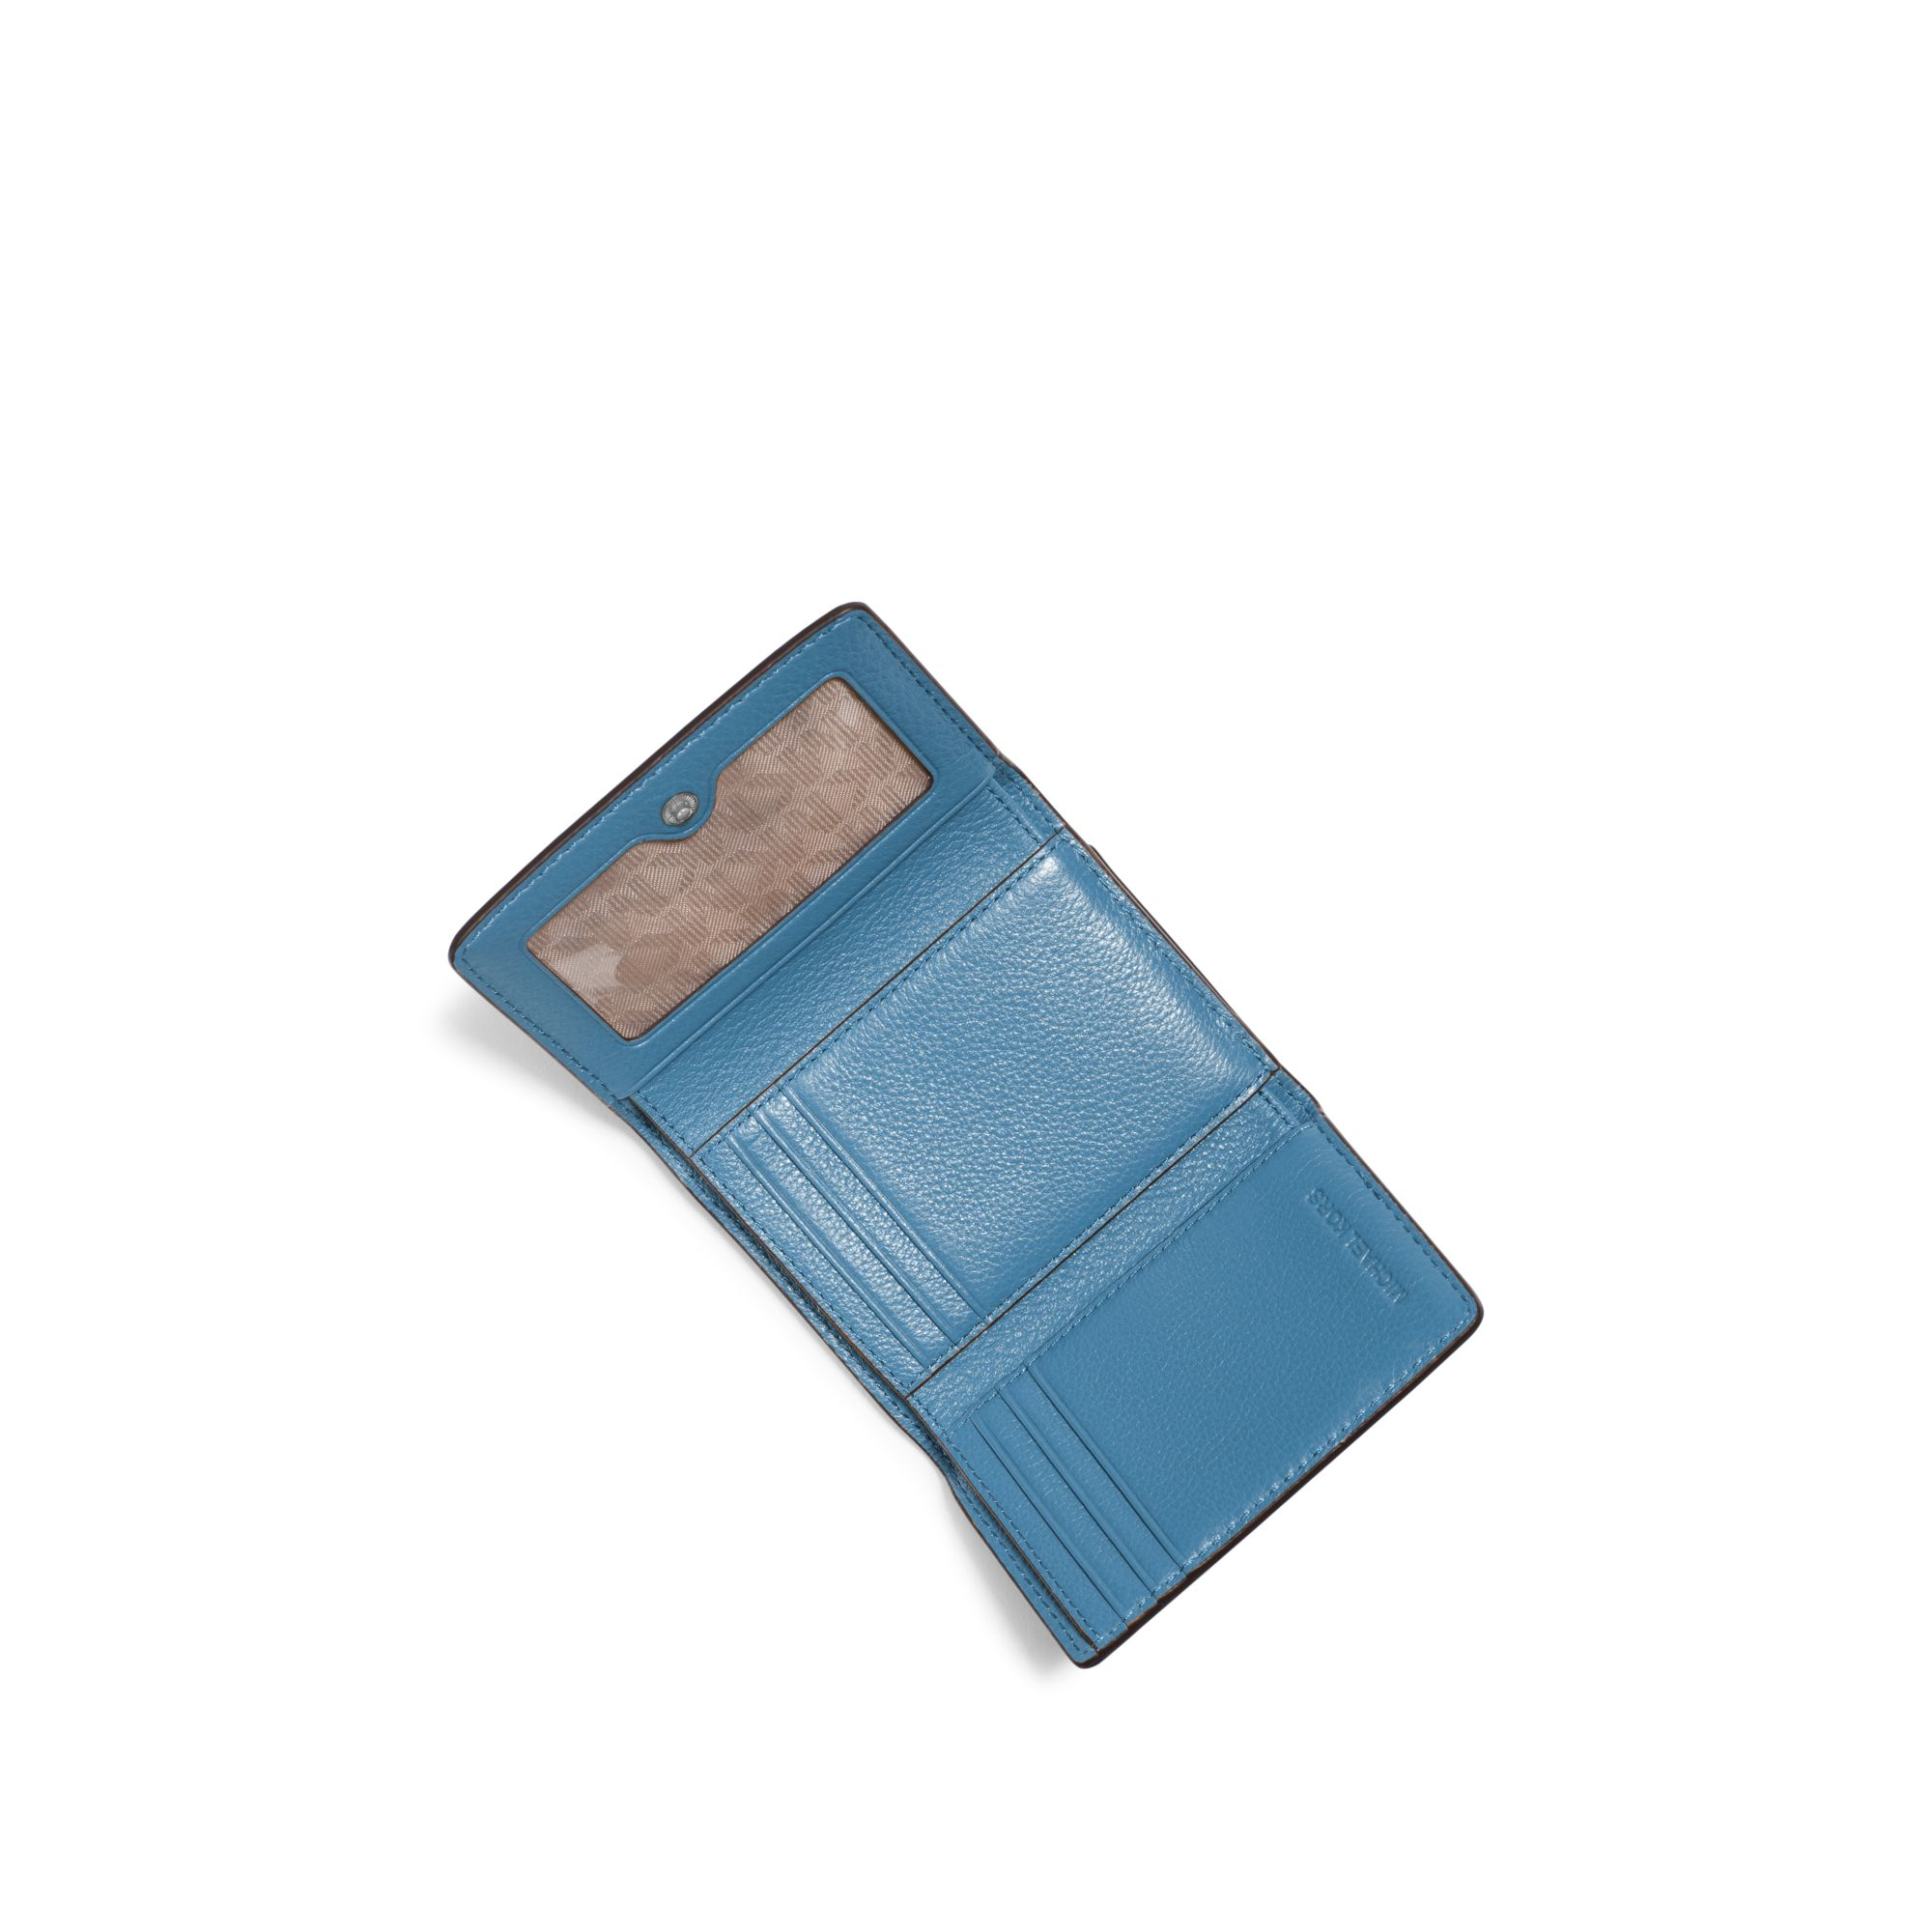 48d704a90a5e9f Michael Kors Liane Small Leather Card Holder in Blue - Lyst